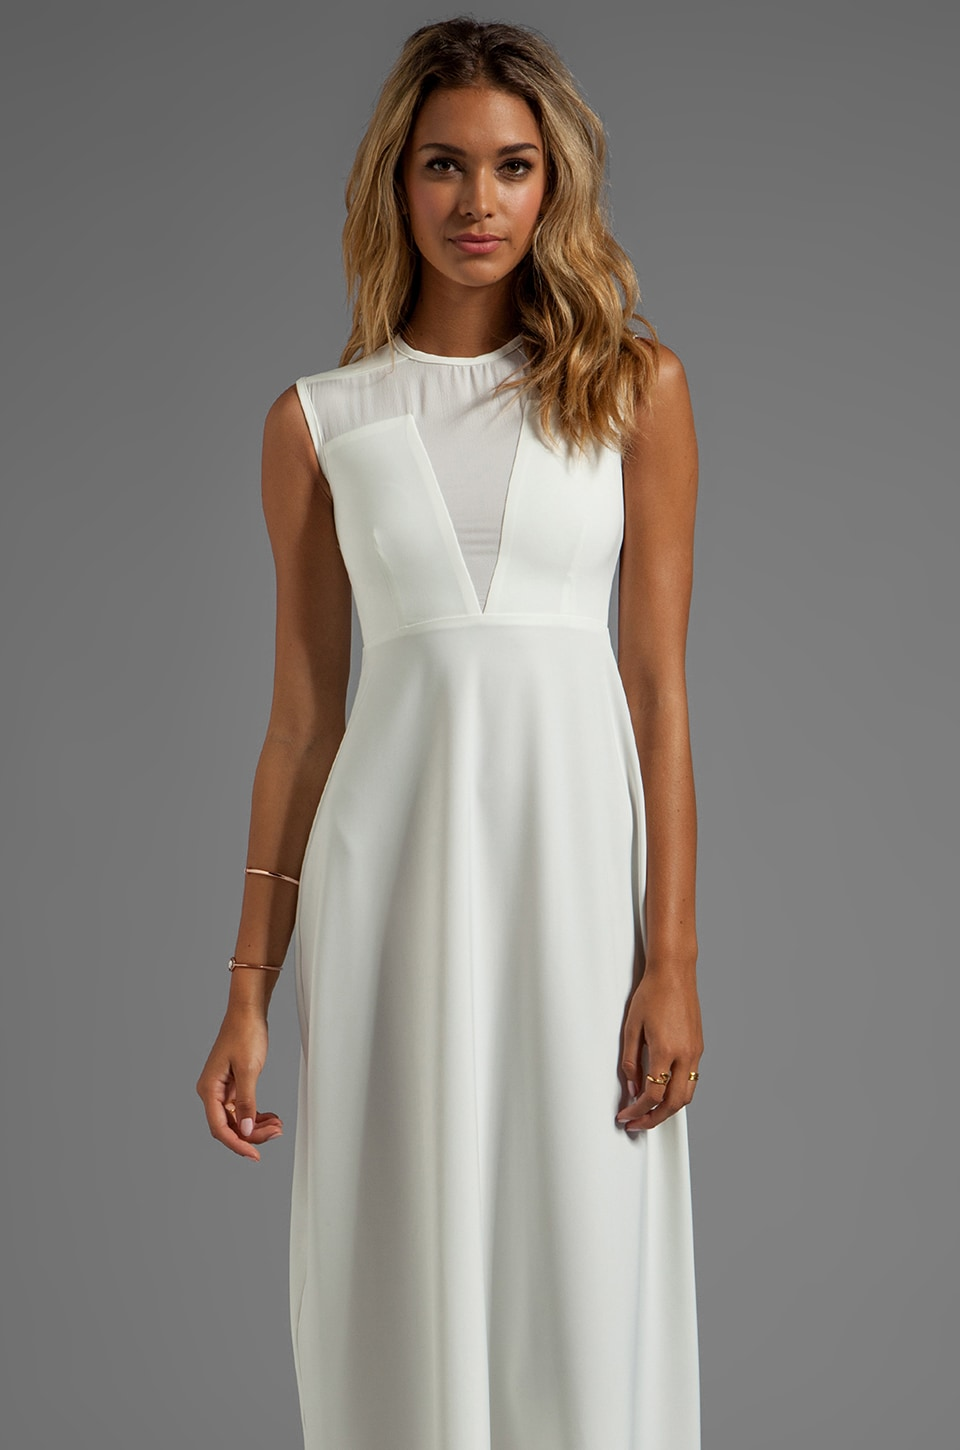 AQ/AQ Fiona Maxi Dress in Cream